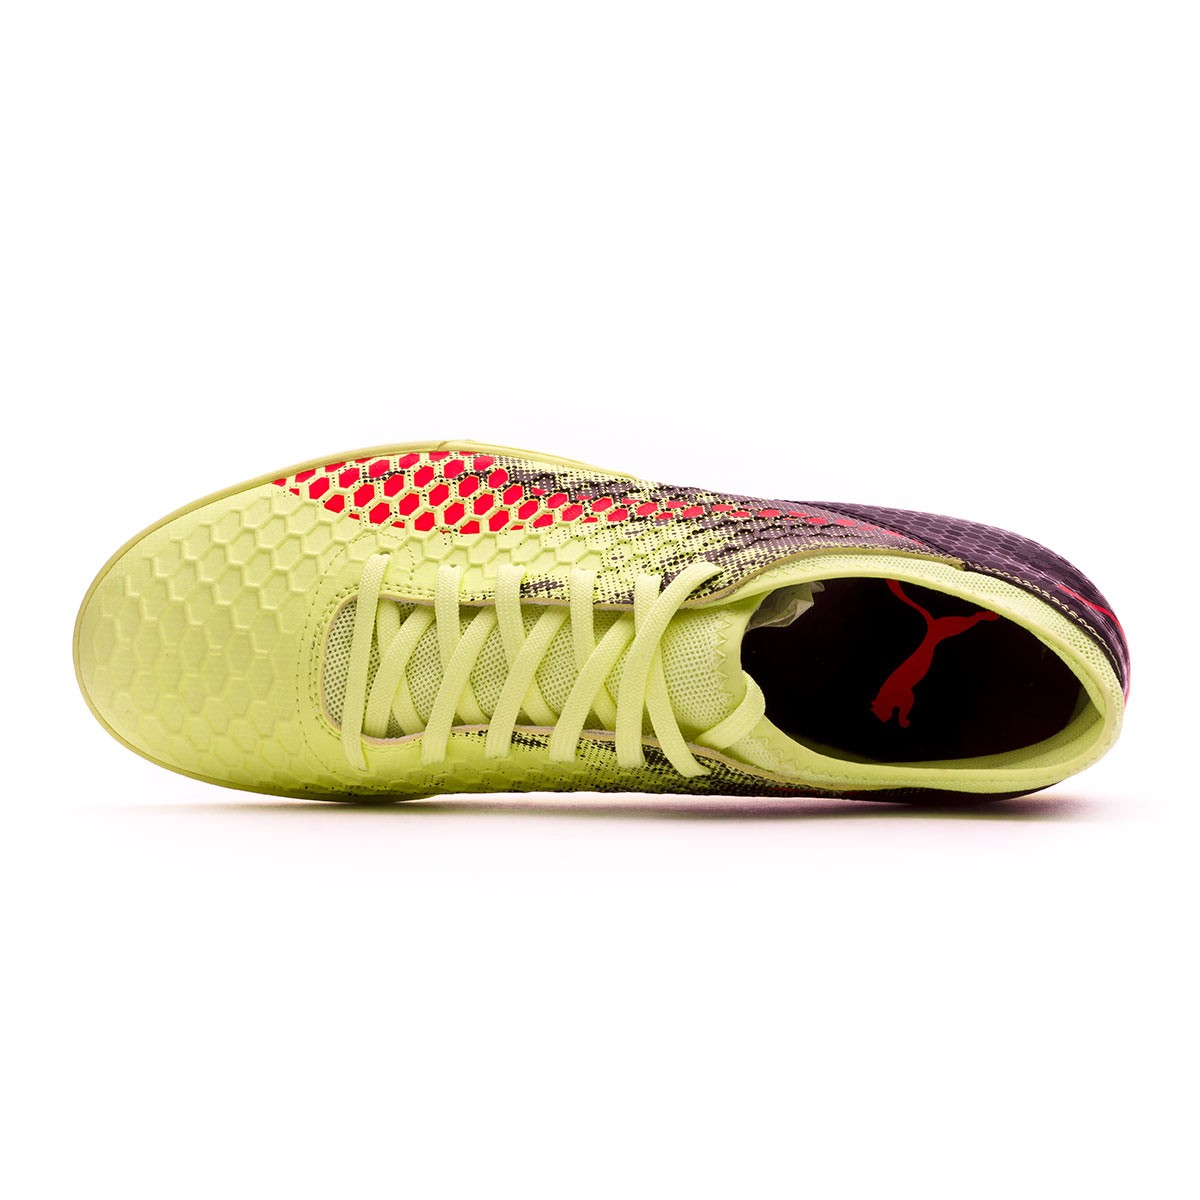 Futsal Boot Puma Kids Future 18.4 IT Fizzy Yellow-Red Blast-Puma Black -  Leaked soccer 91bfb4d534